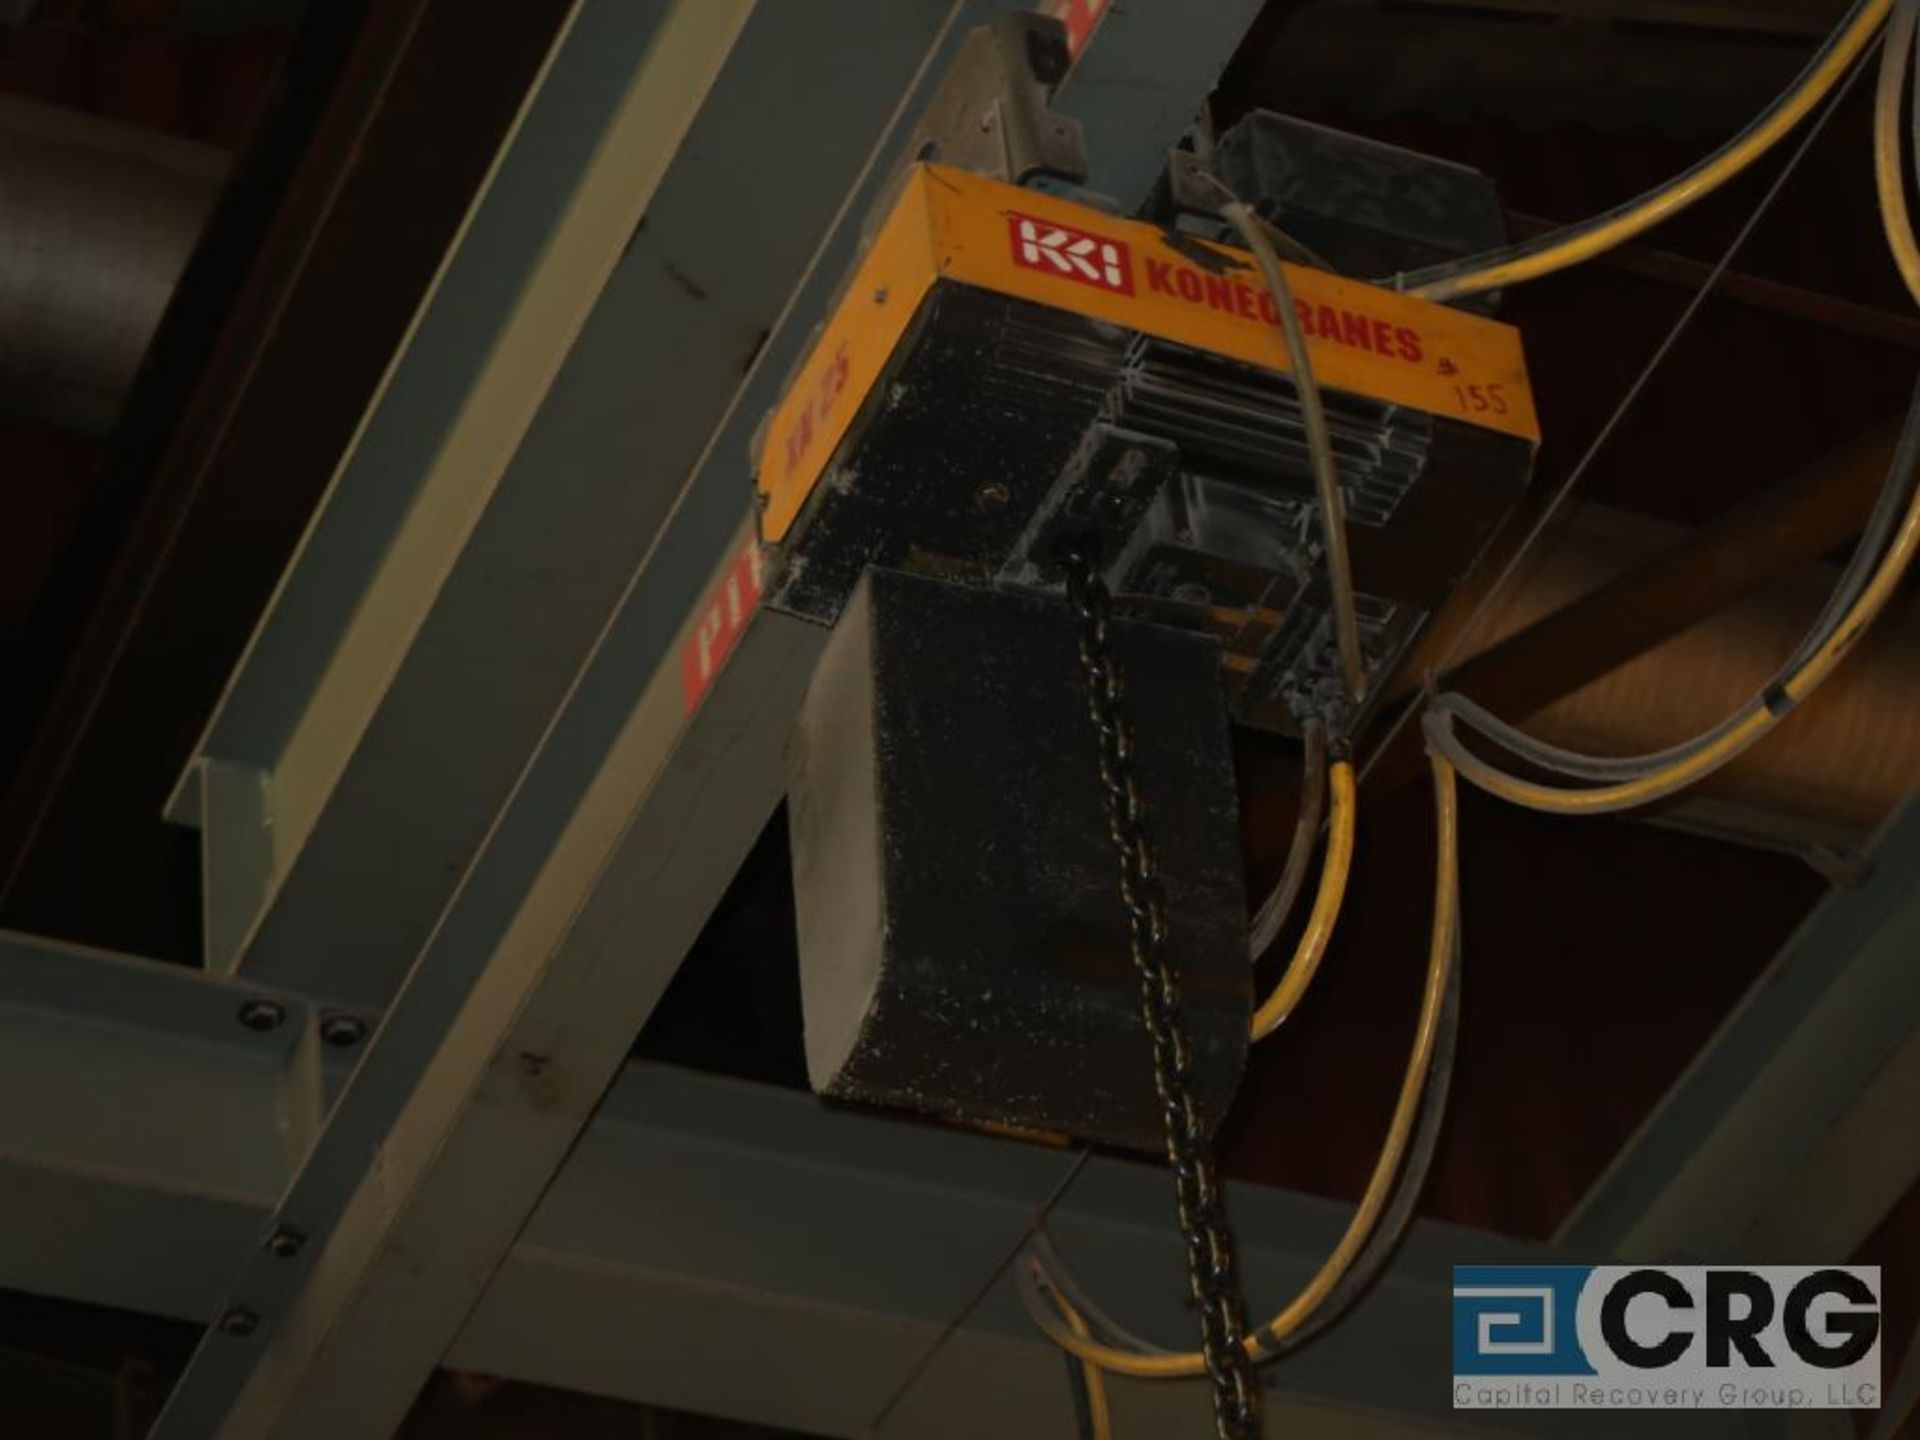 Konecranes XN25 electric hoist, 3 ton cap., hoist only, no beam-LATE DELIVERY (Located on Level - Image 11 of 12